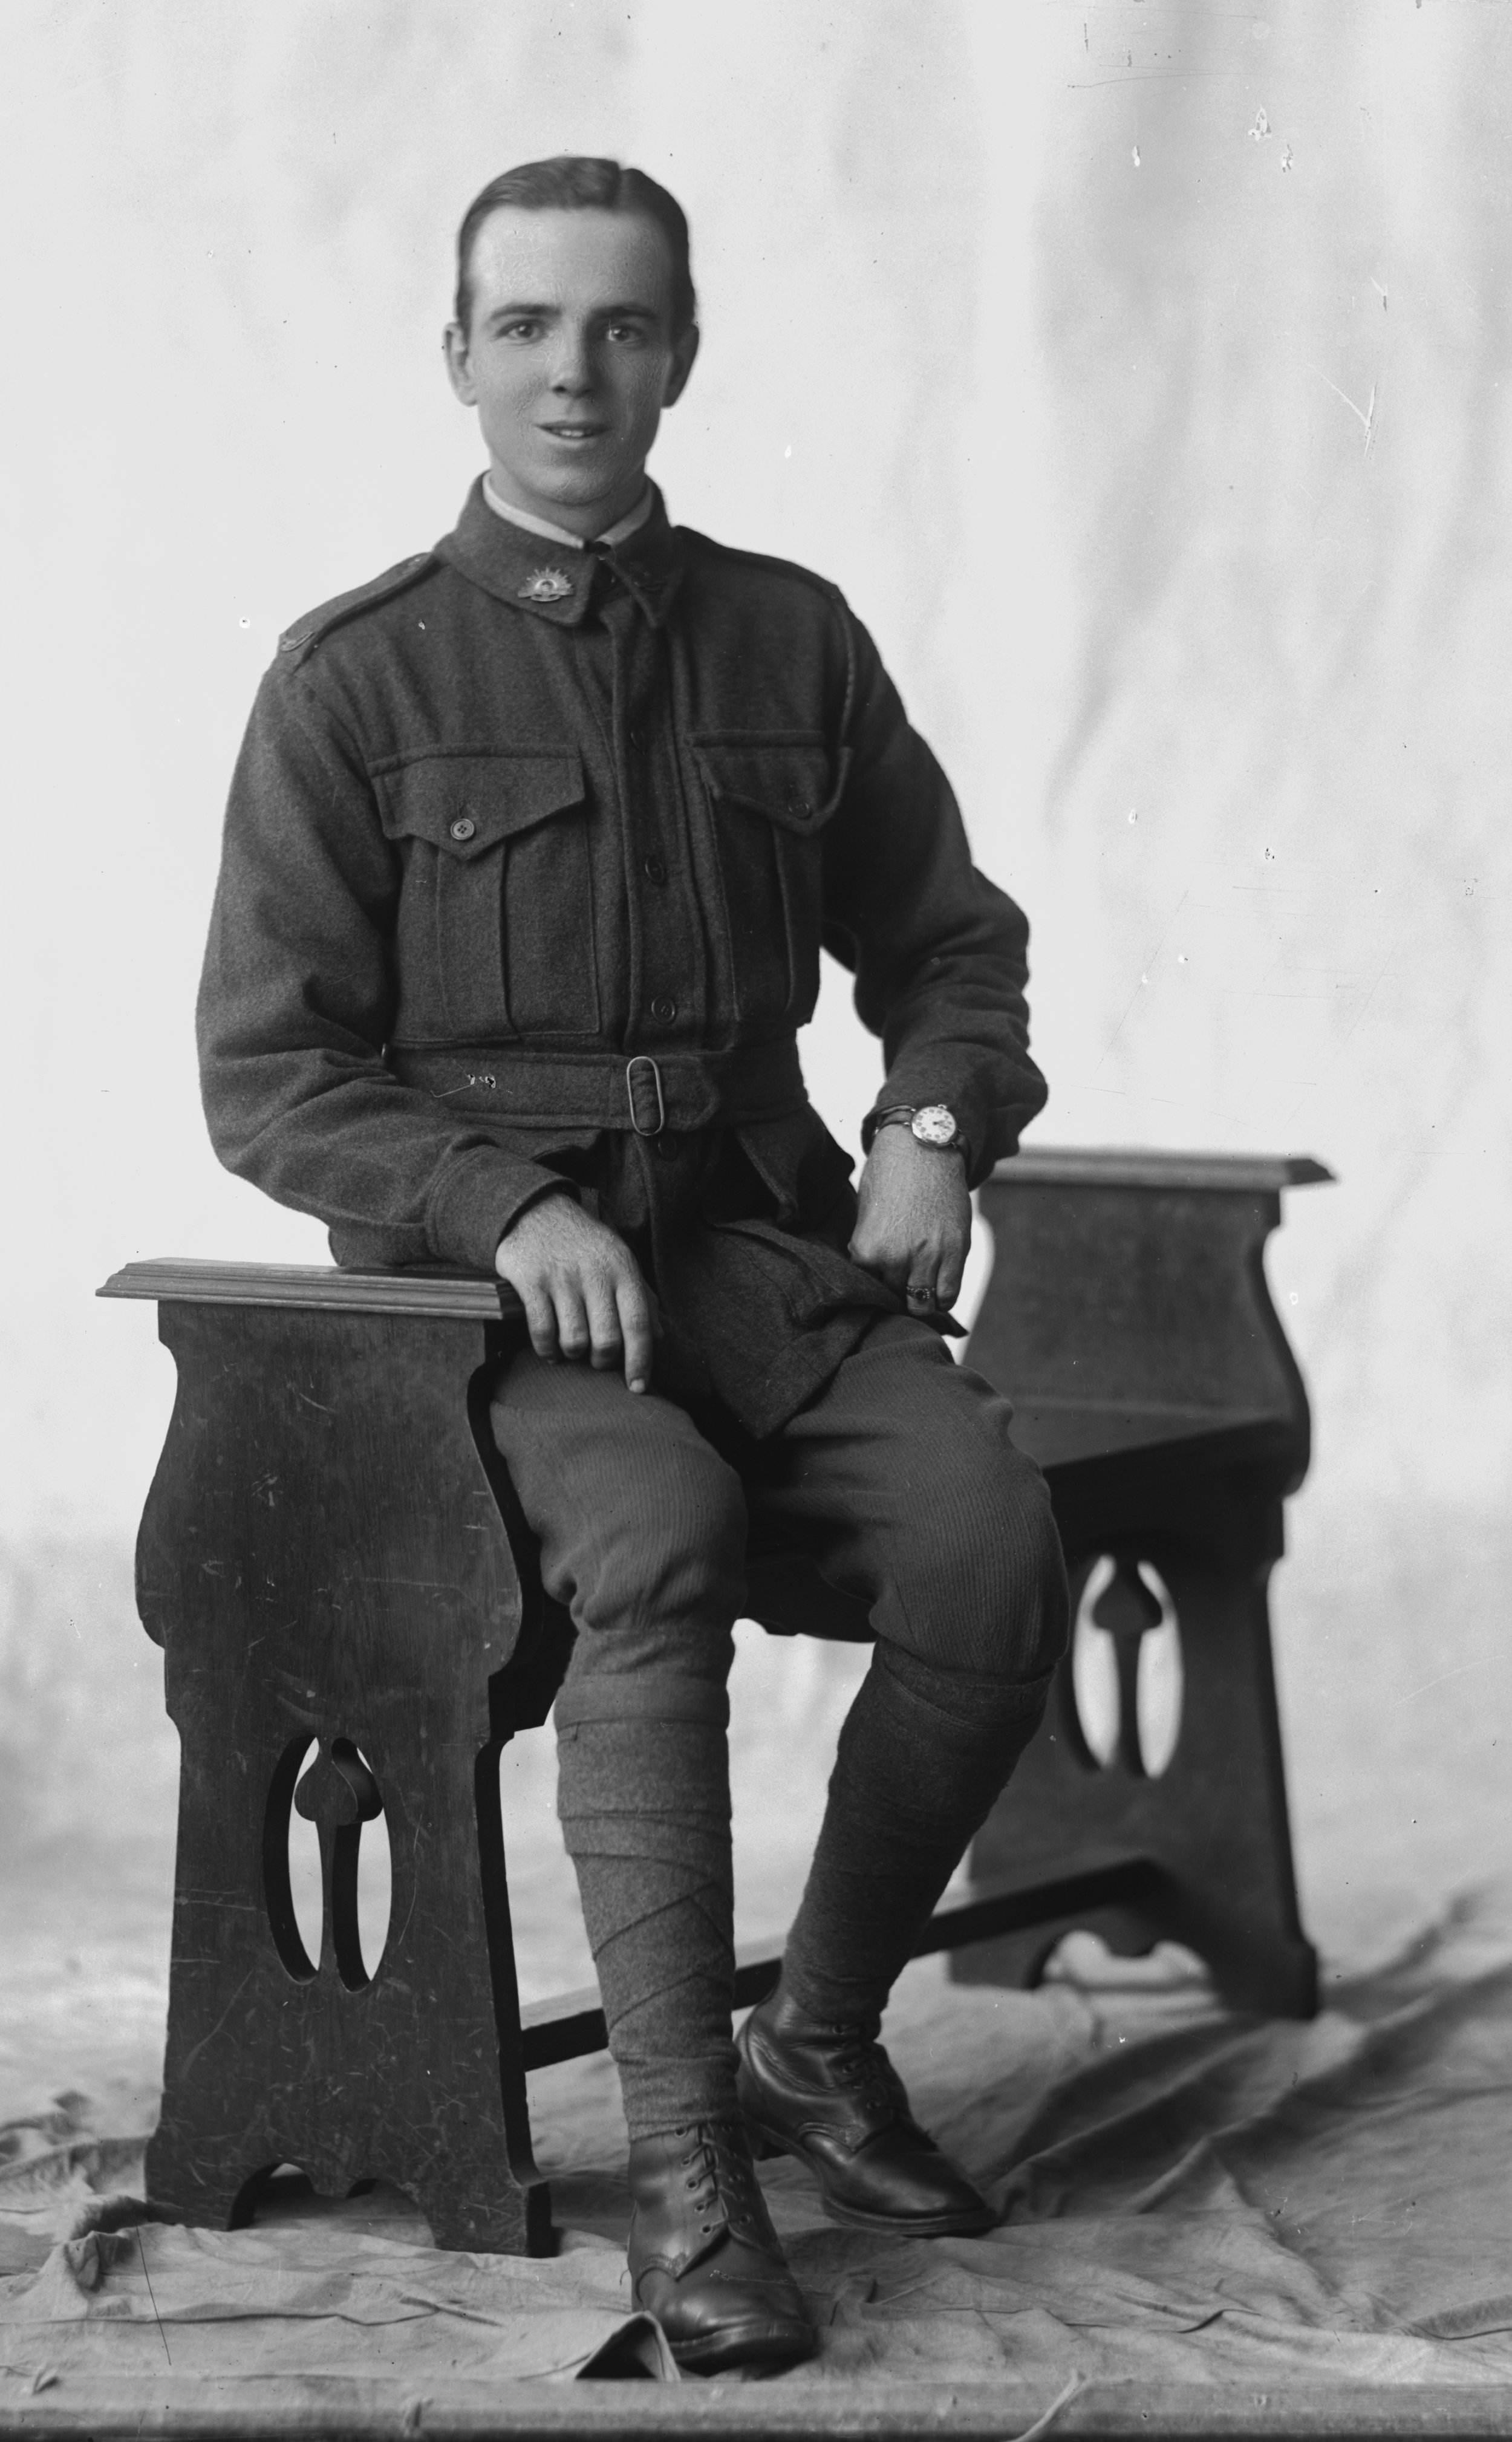 Photographed at the Dease Studio, 117 Barrack Street Perth WA Image courtesy of the State Library of Western Australia: 108395PD